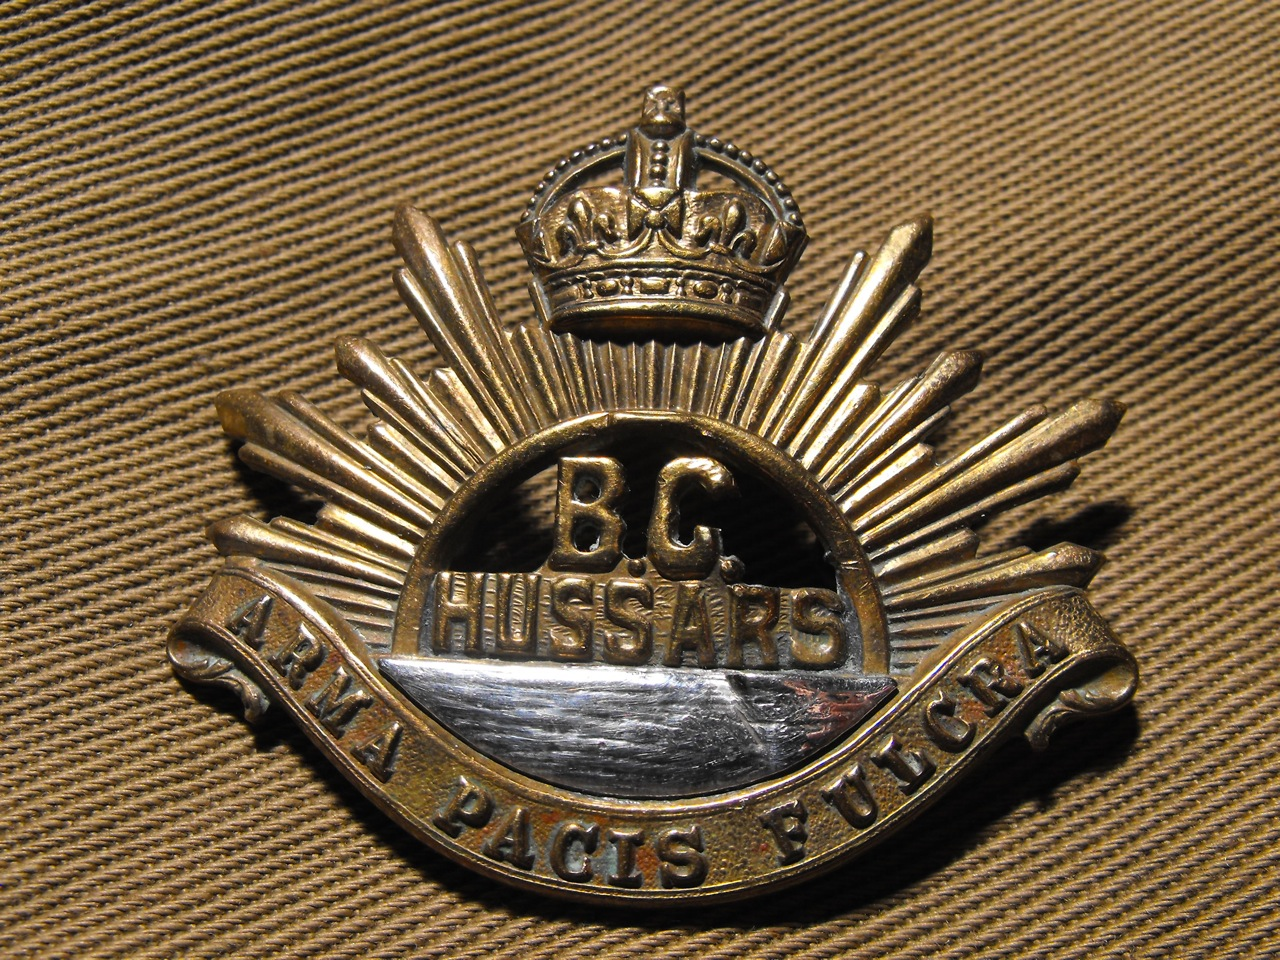 31st B.C. Horse Cap Badge